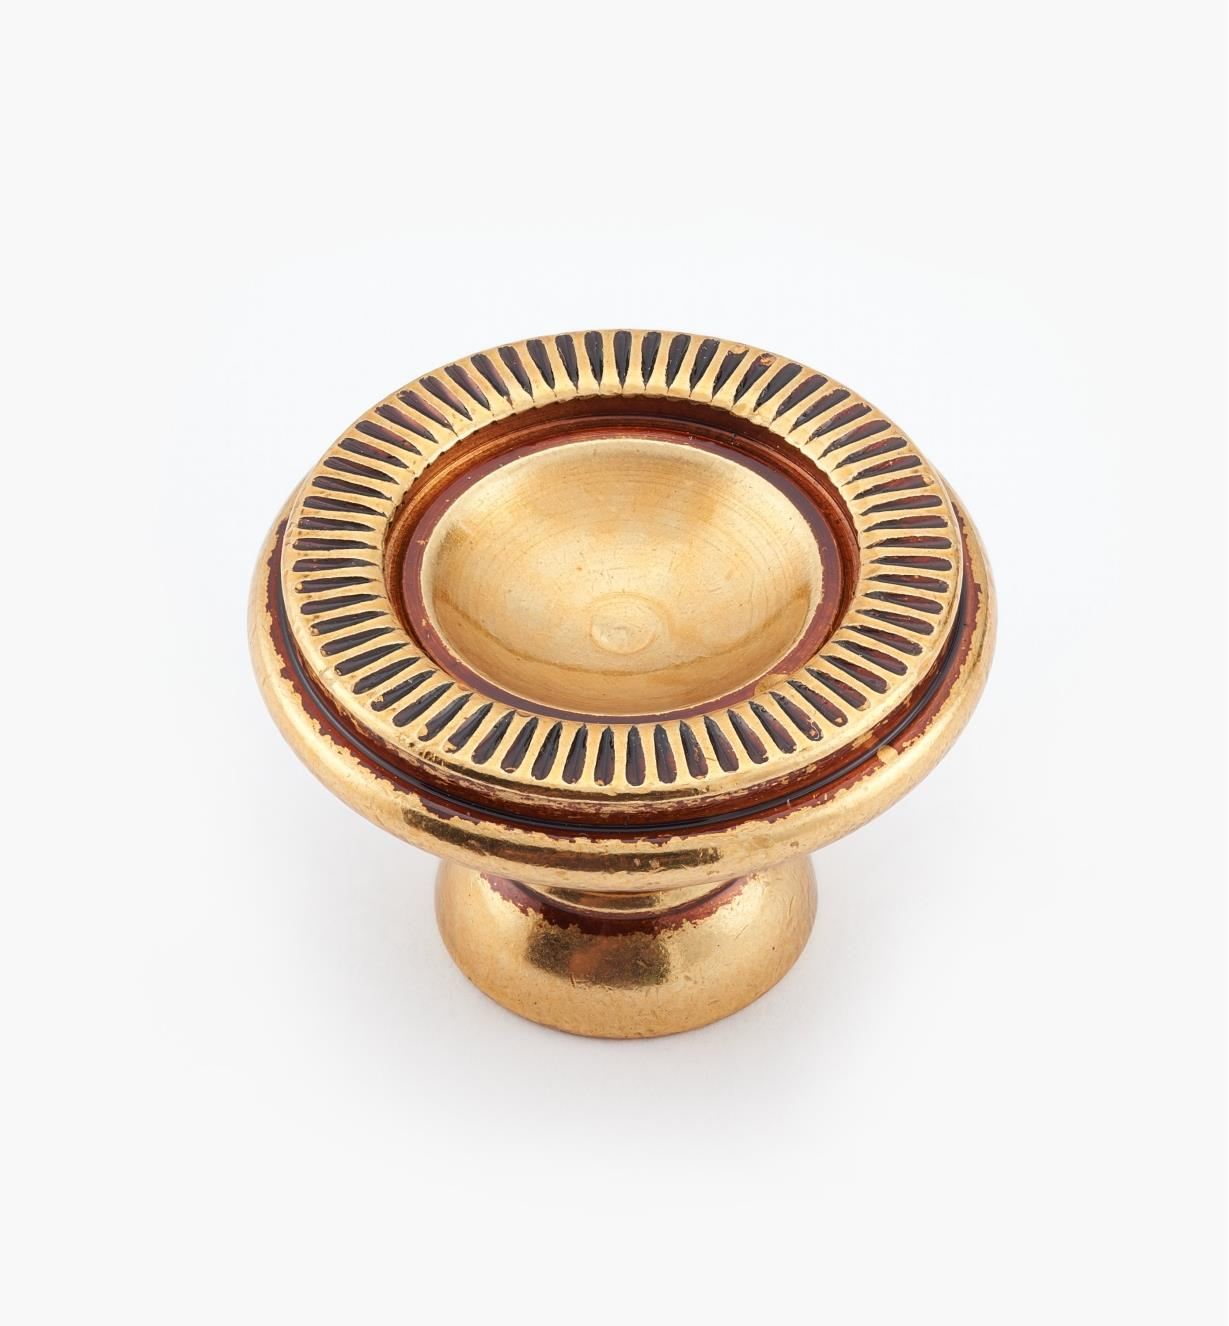 01A5883 - 30mm x 20mm Antique Brass Knob